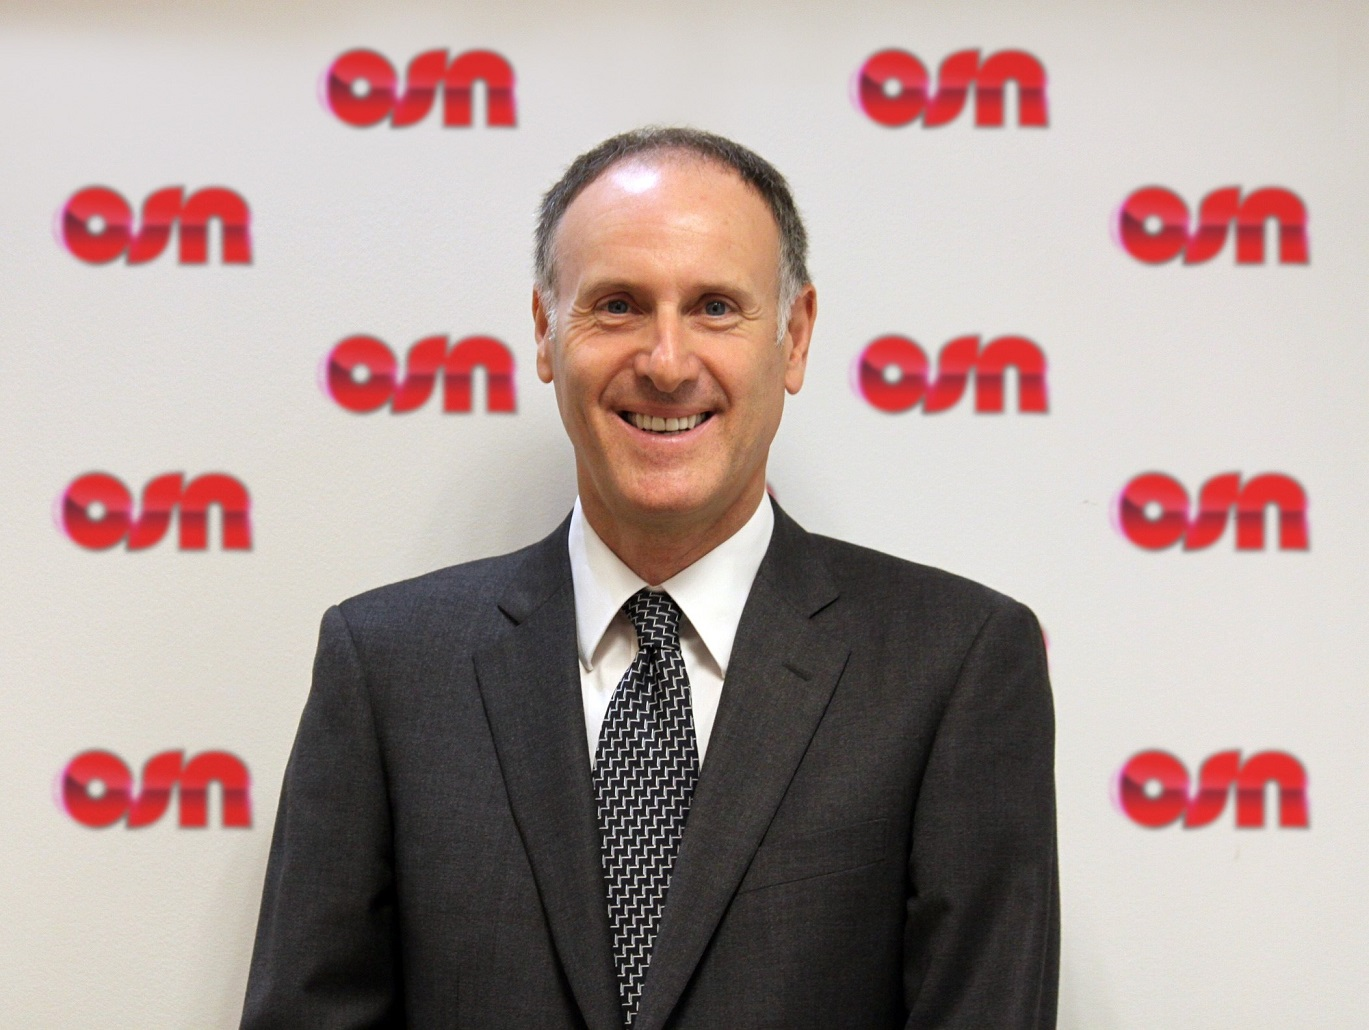 OSN appoints industry leader Martin Stewart as CEO